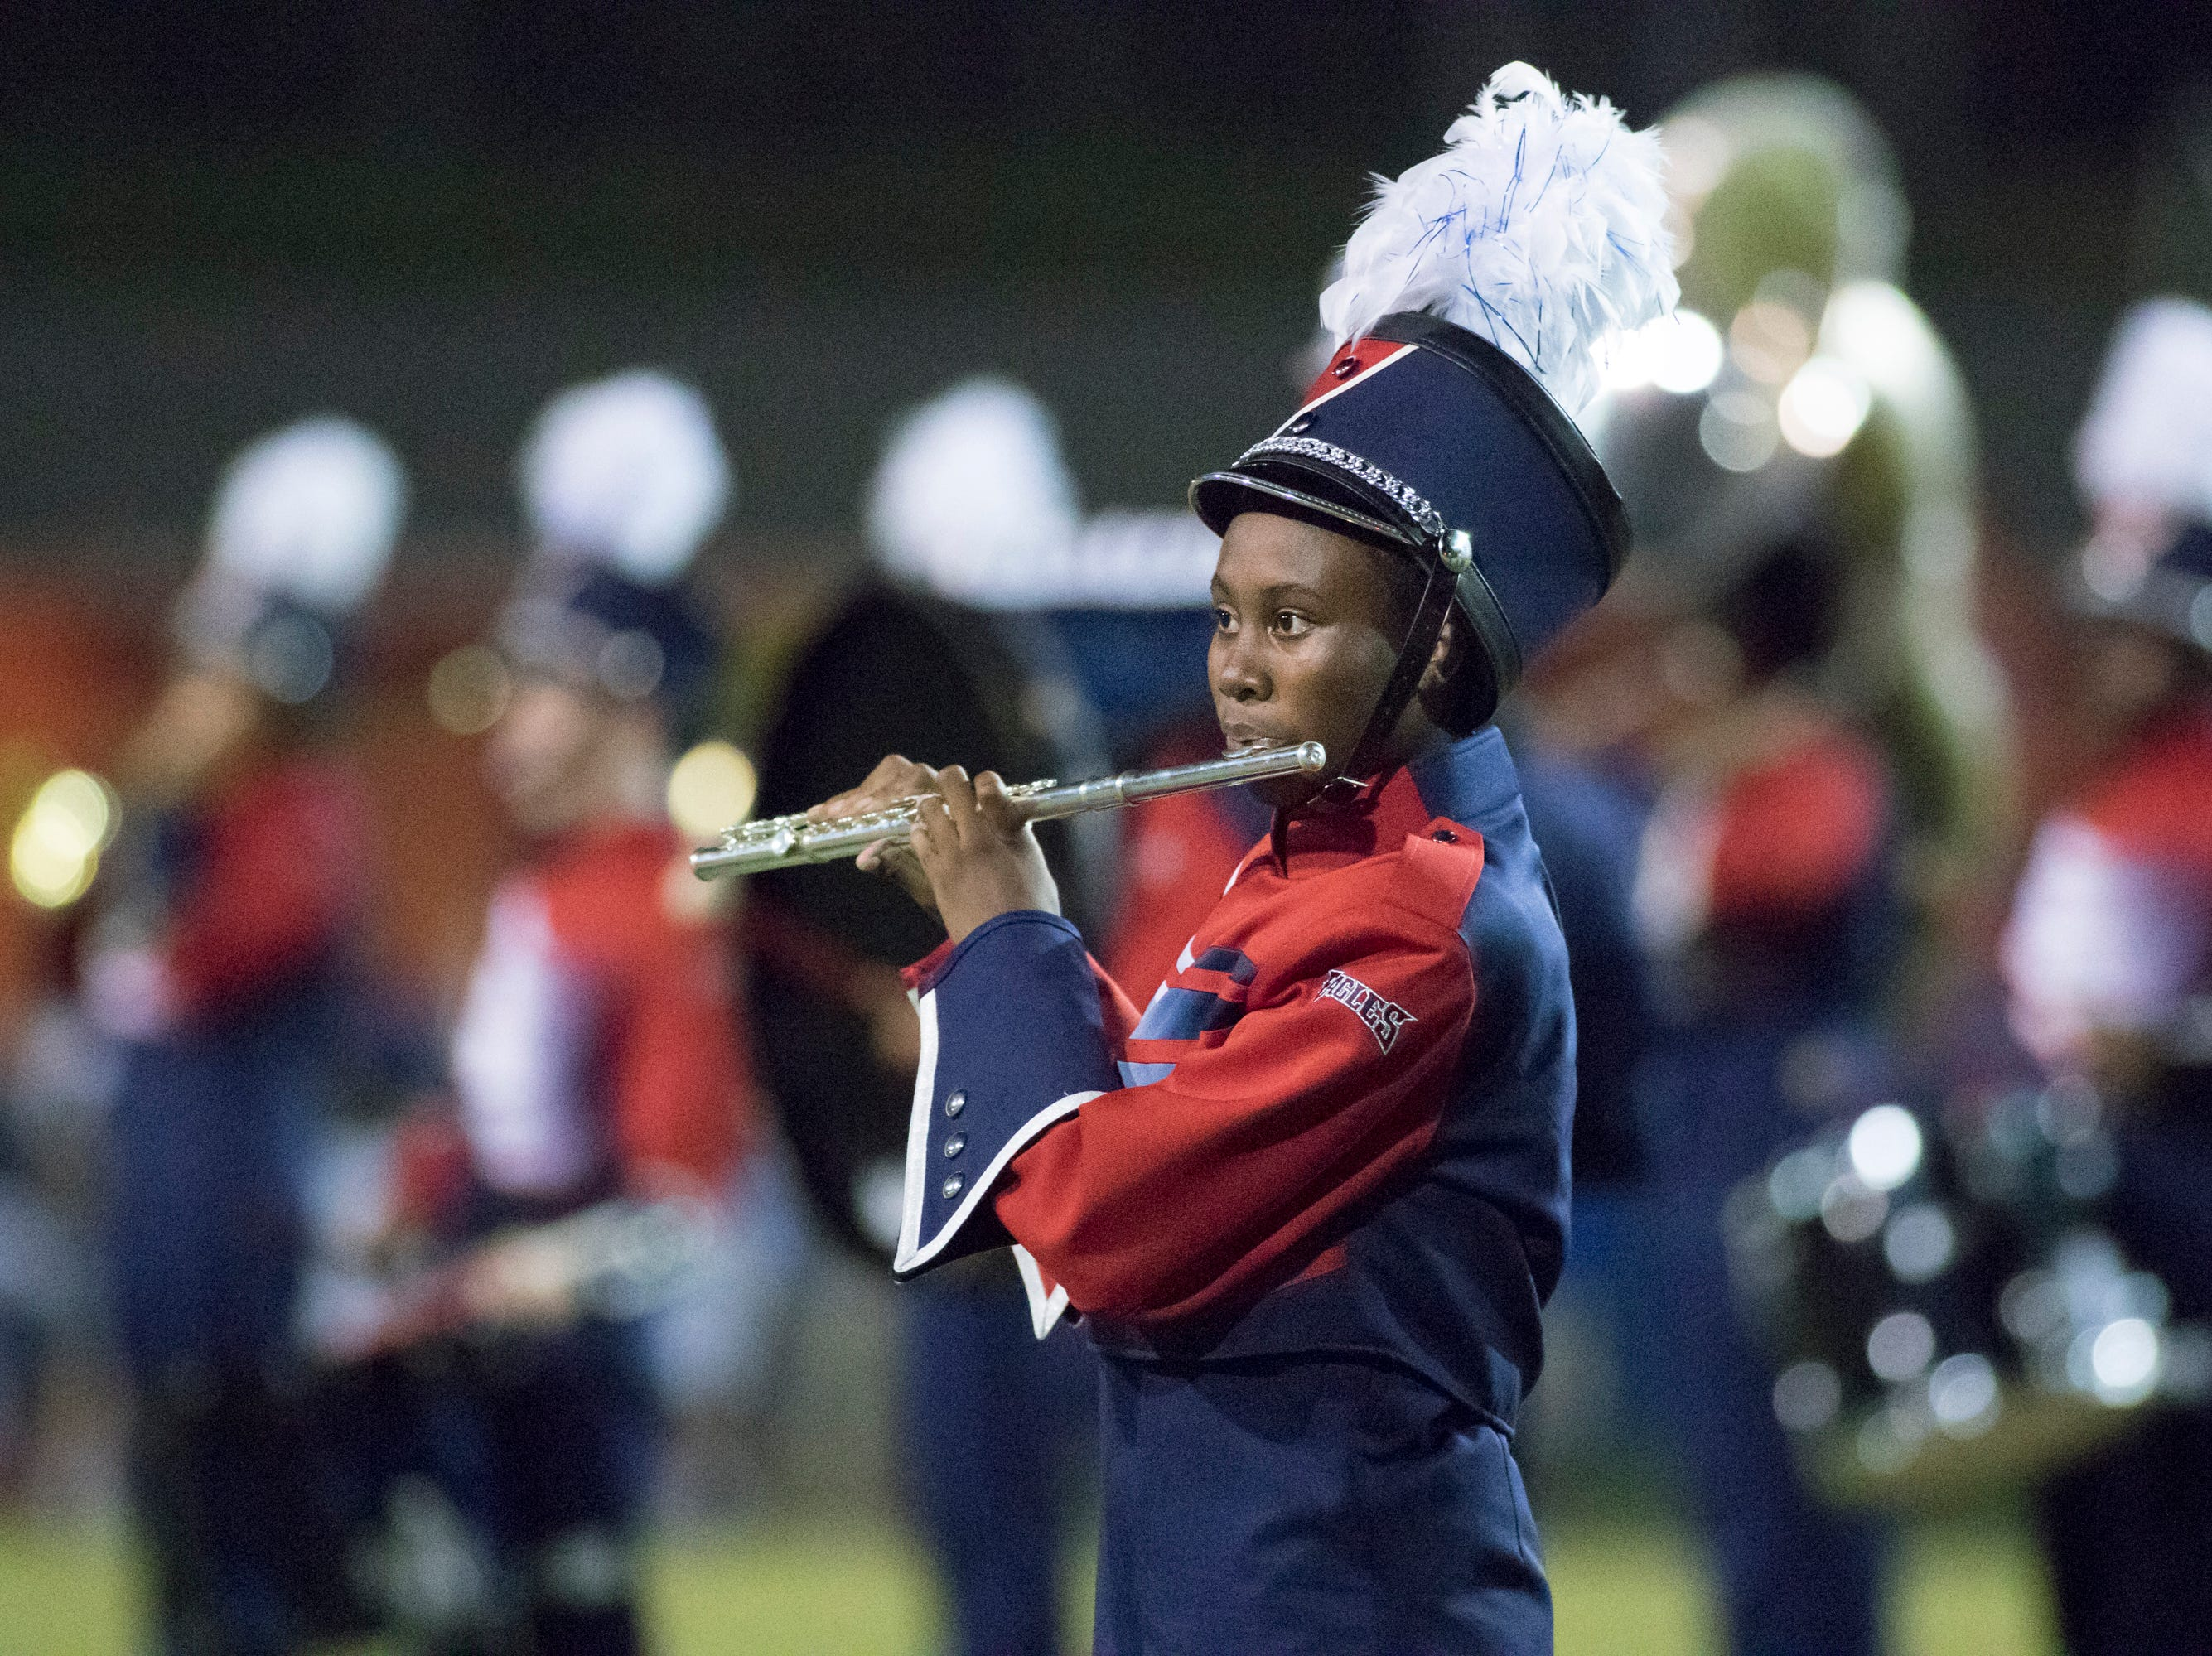 The Eagles marching band performs during halftime of the Pine Forest vs Escambia football game at Escambia High School in Pensacola on Friday, September 28, 2018.